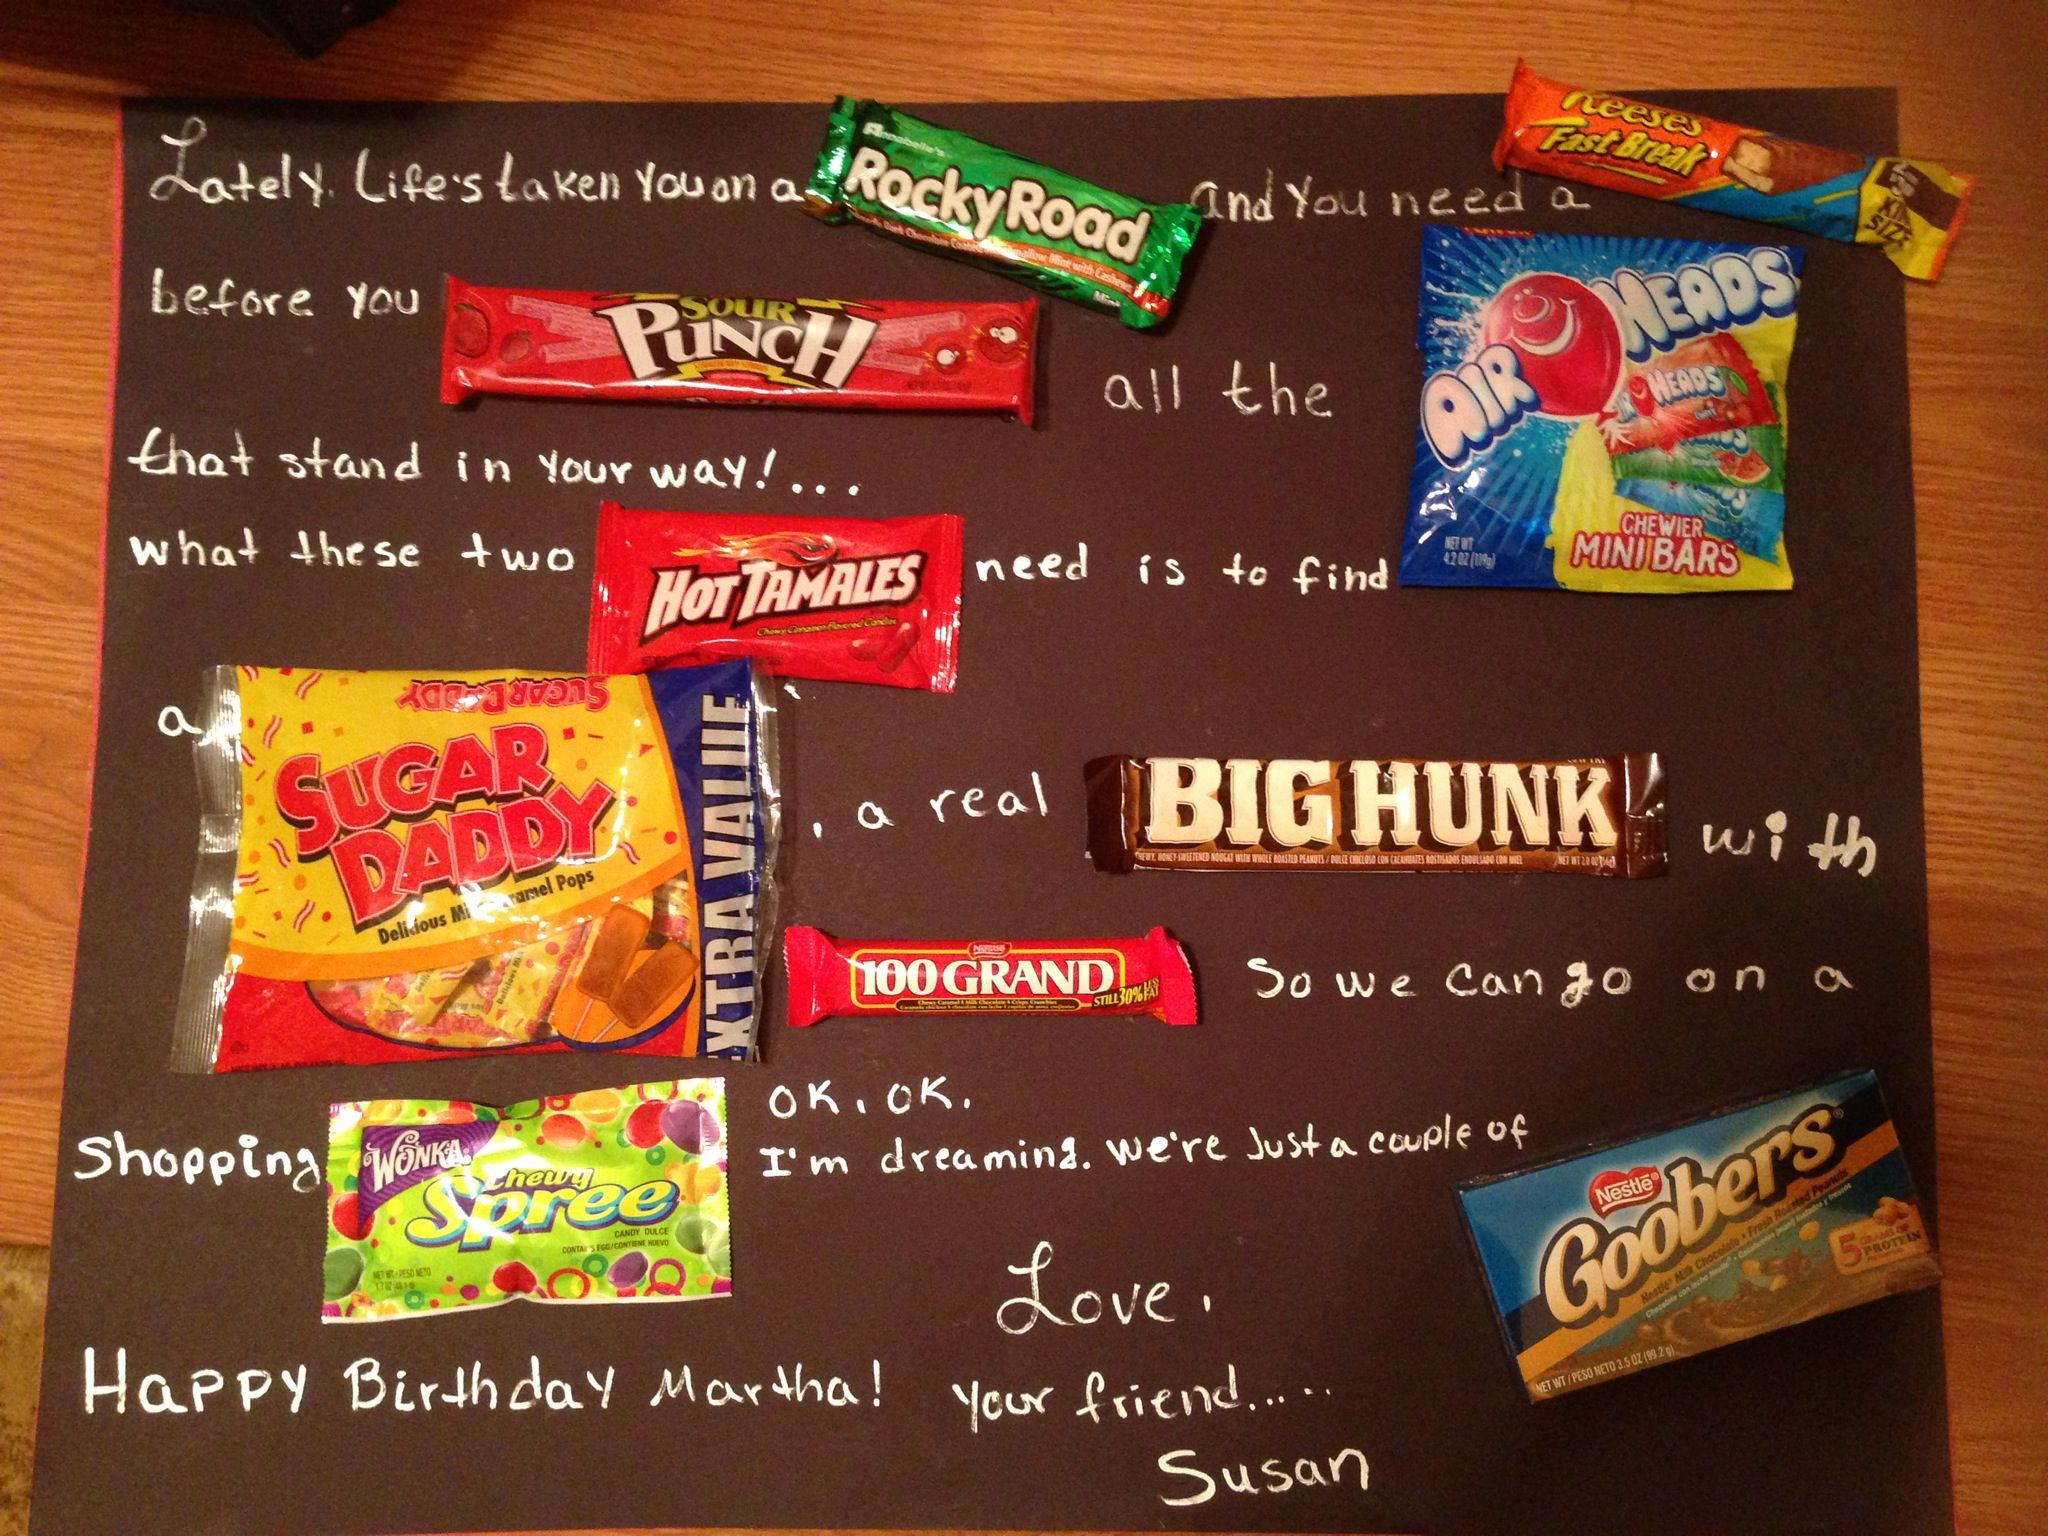 Awesome candy bar birthday card graphics eccleshallfc candy bar birthday card idea file pinterest bookmarktalkfo Image collections